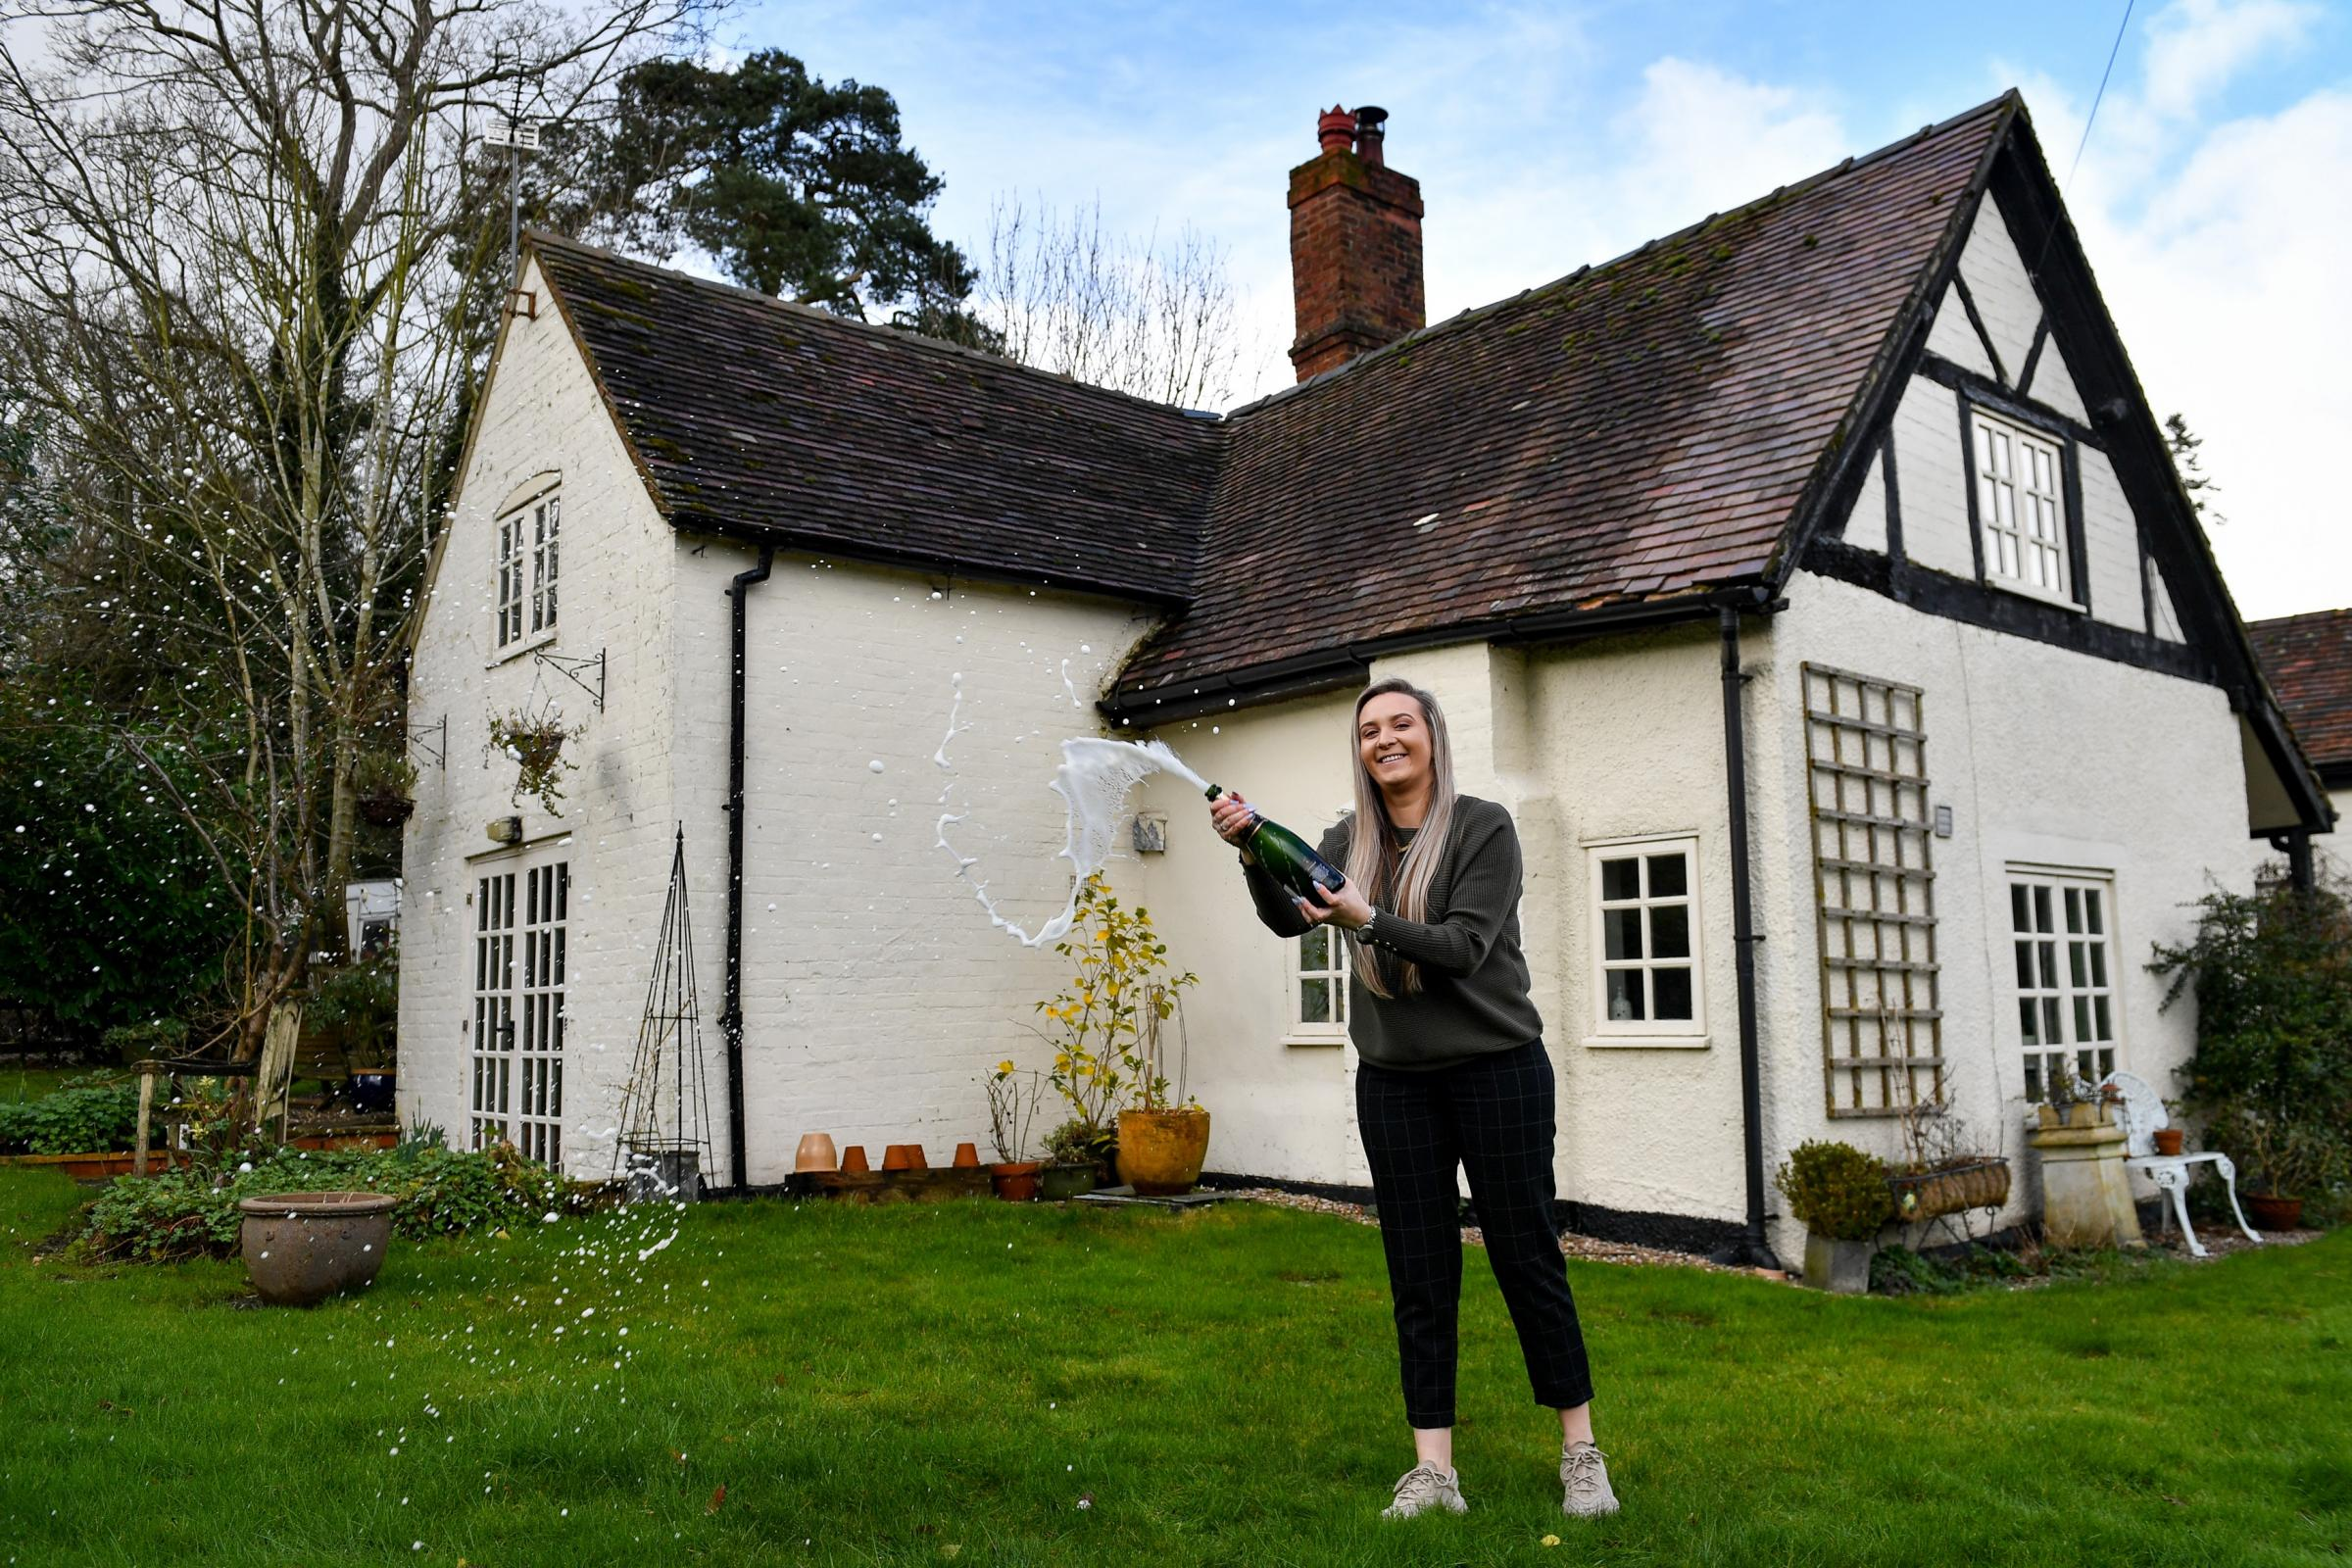 23 Year Old Wins 500 000 Farmhouse With 2 Prize Draw Ticket In Cumbria